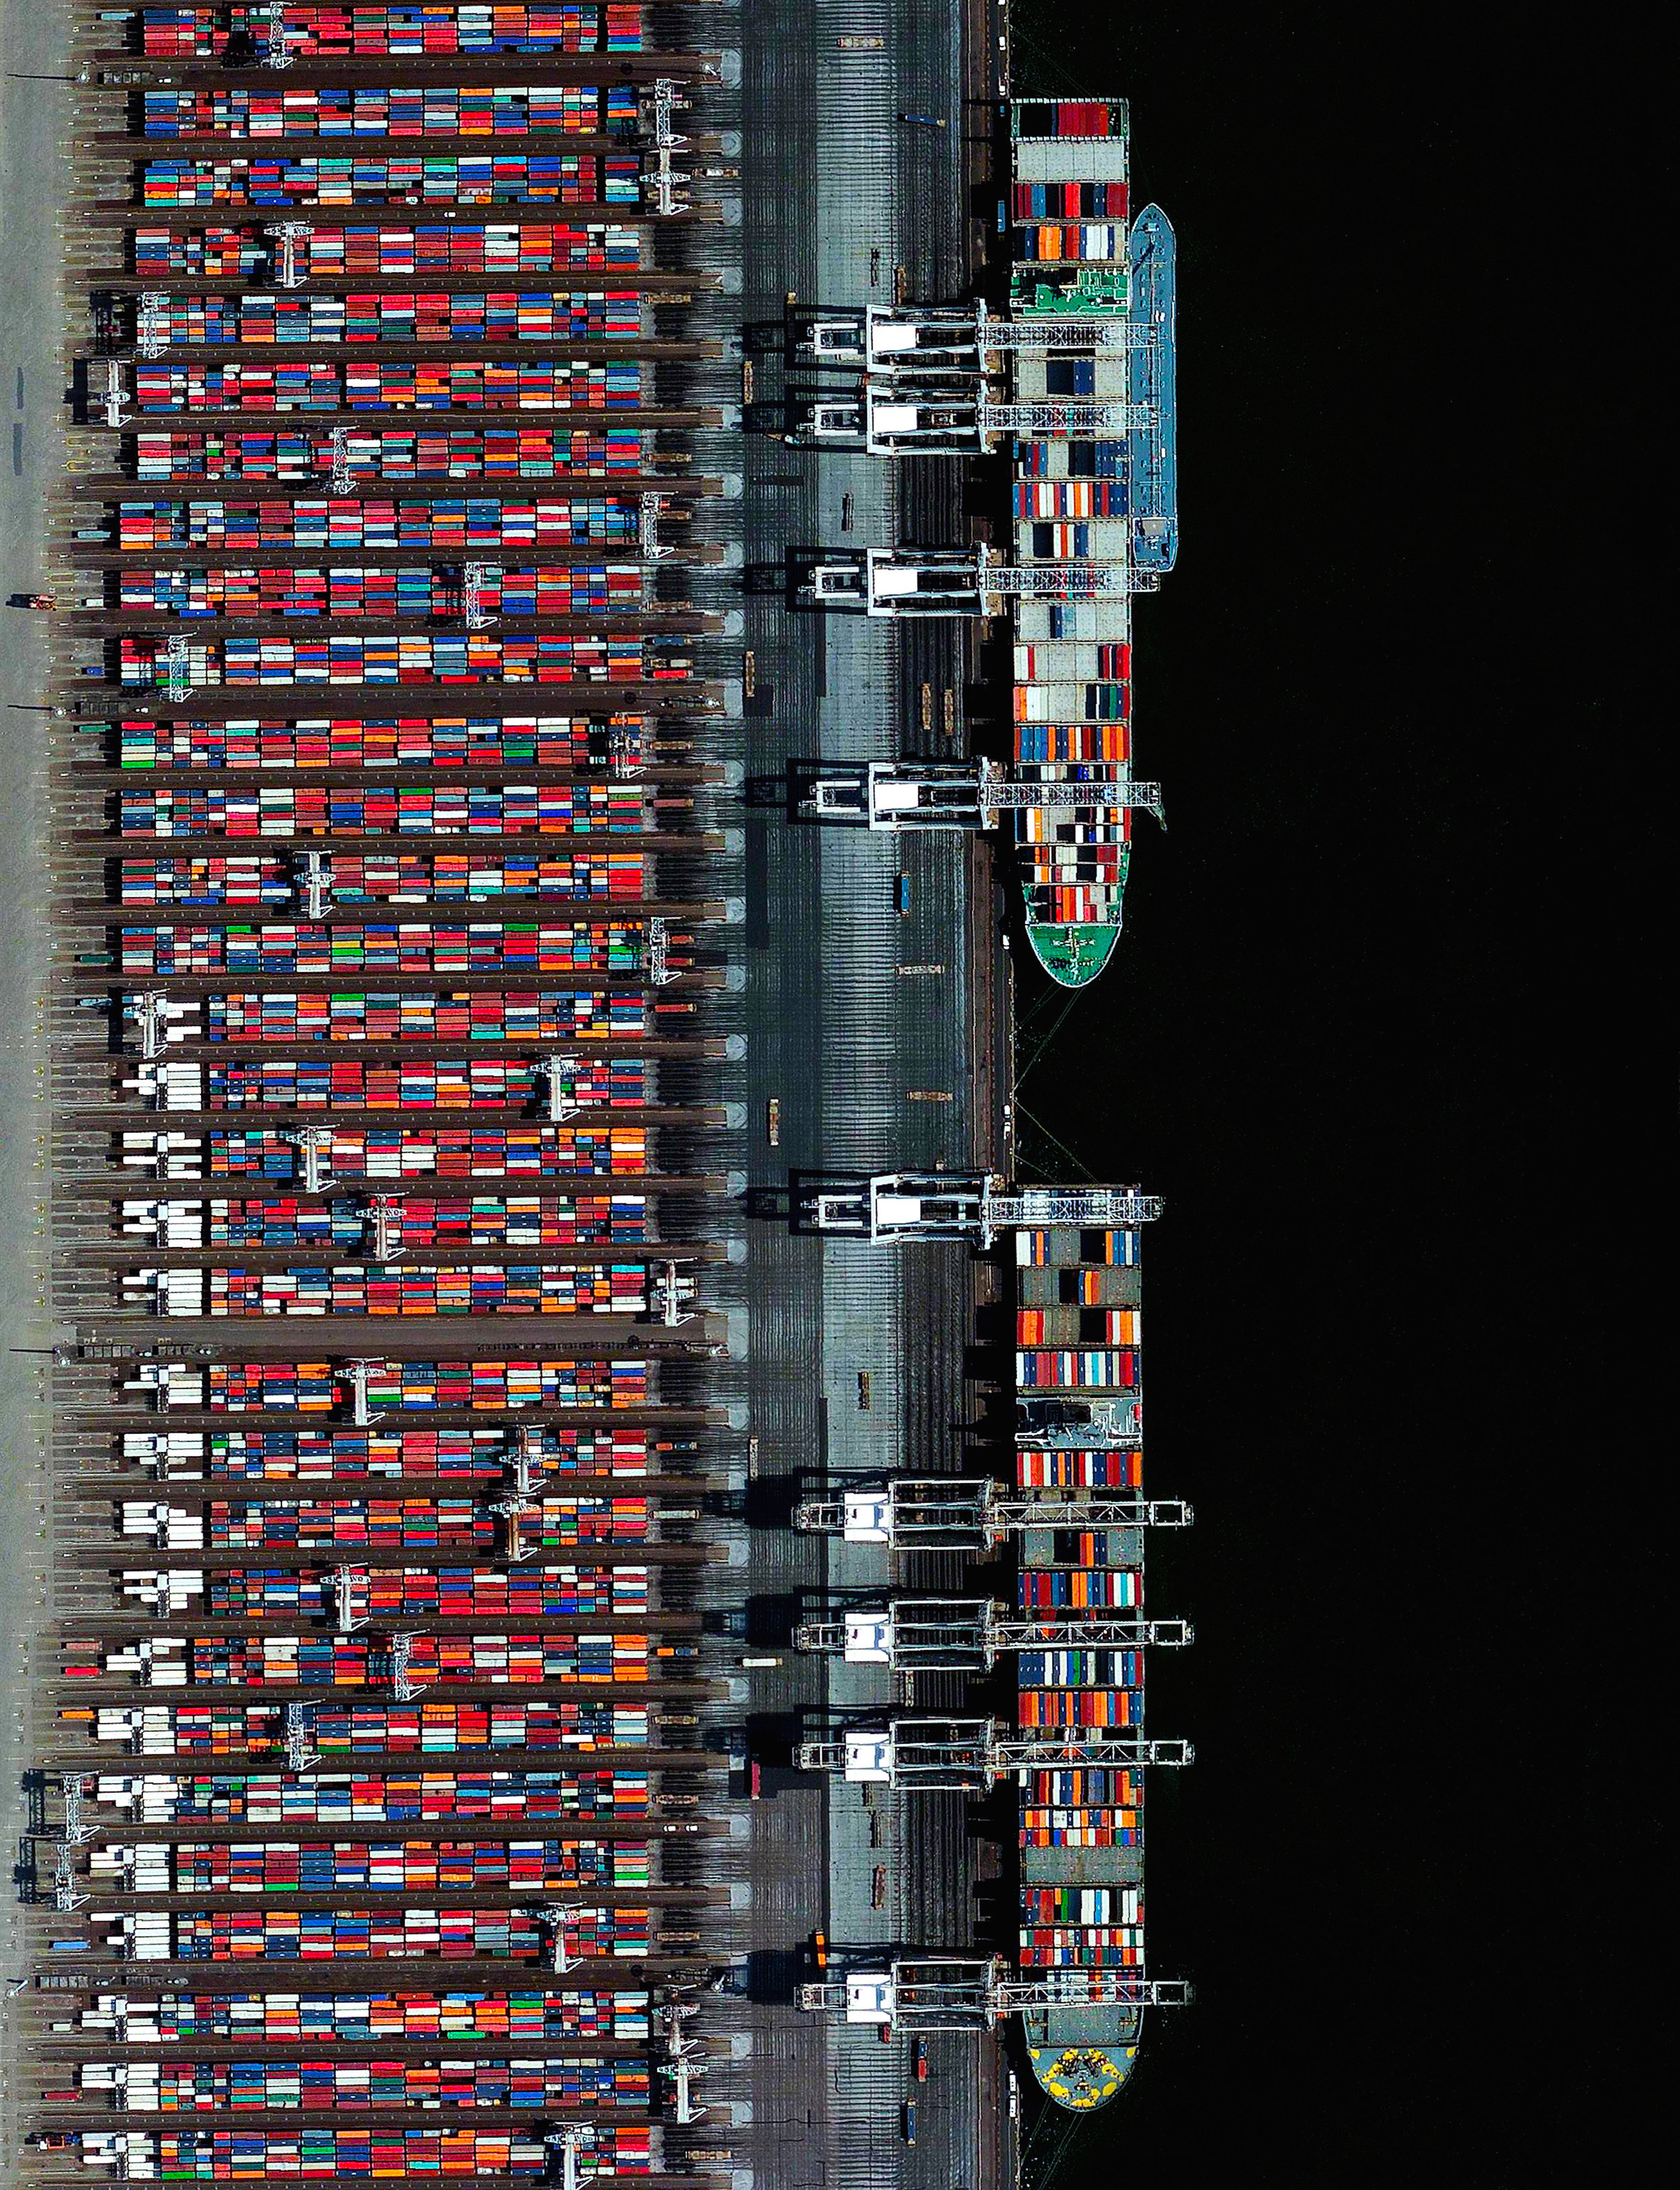 """The Port of Rotterdam — one of the first Overviews ever published on Daily Overview. Today marks our 1500th post on Instagram! I started this project because I believed the Overview perspective not only offered a means to look at our planet like never before, but was also something that could bring people together. To see where the project is now, nearly four years and 1500 posts later, has exceeded all of my wildest expectations. A sincere thank you from the bottom of my heart to everyone who has shared the images, purchased a copy of """"Overview,"""" or simply followed along. Here's to the next 1500 posts! -- Benjamin Grant  51°53'06.0""""N, 4°17'12.1""""E  Source imagery: DigitalGlobe"""